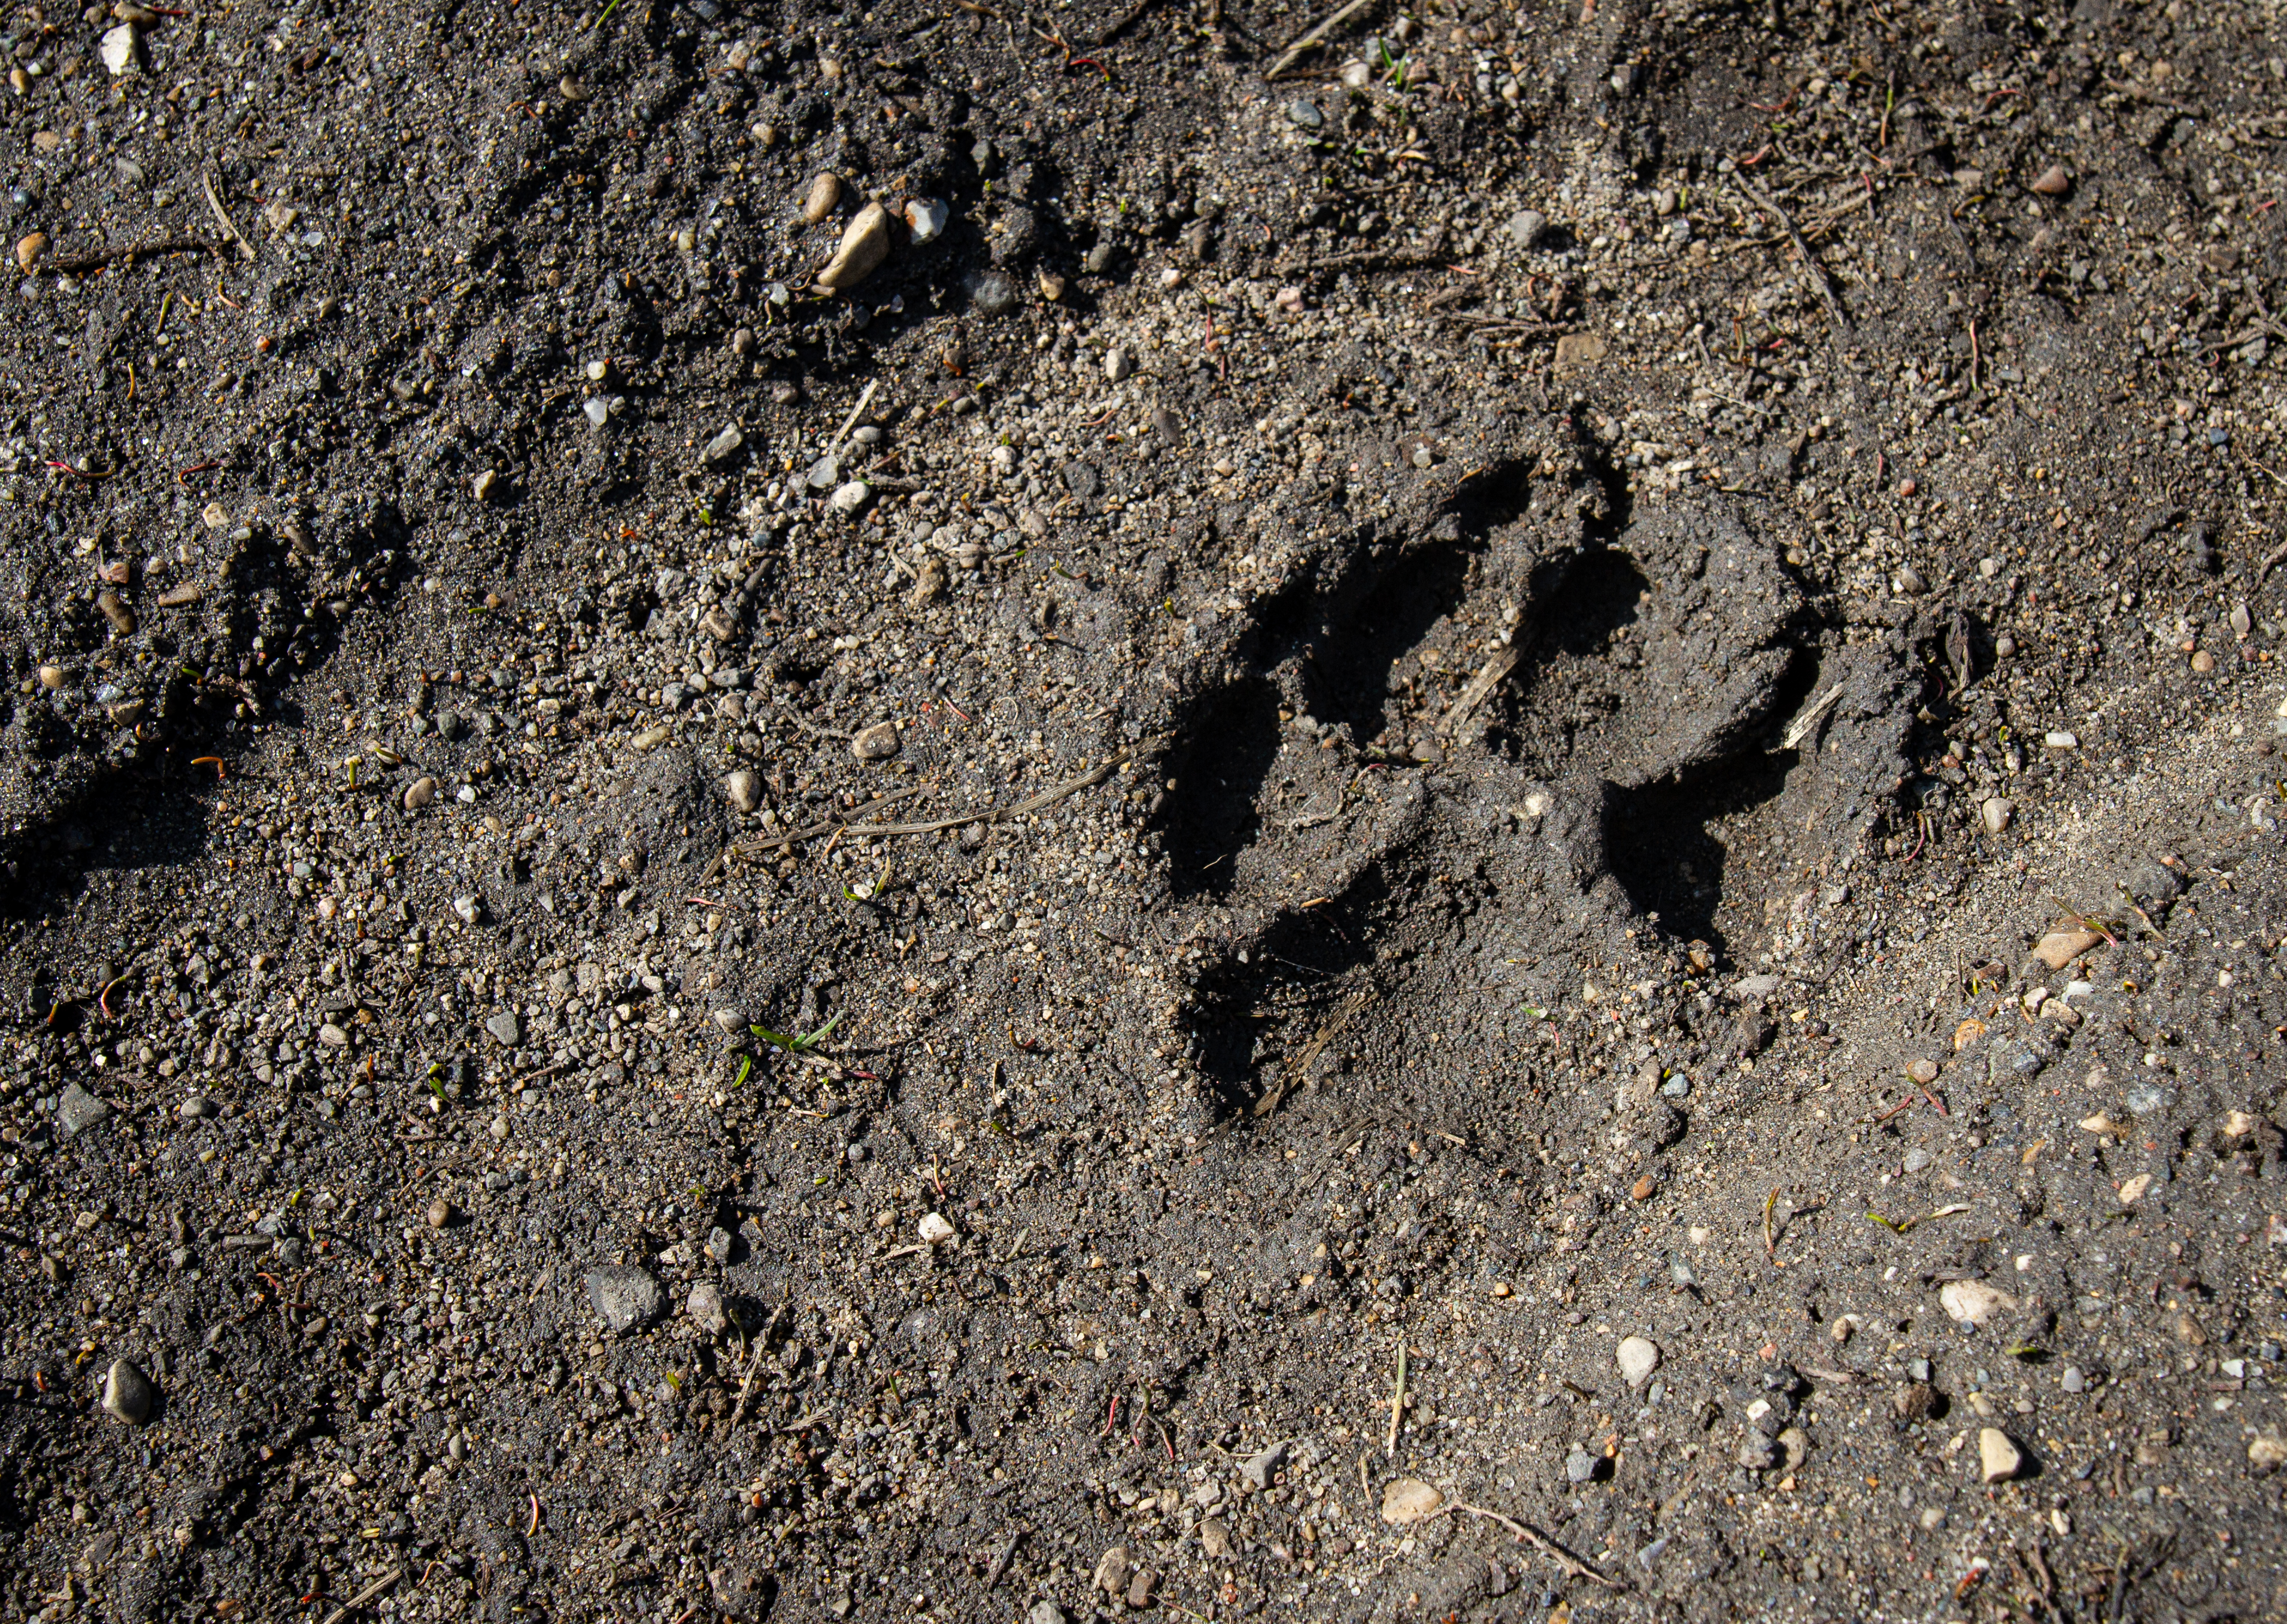 A paw print marks the dirt at Asylum Lake Preserve in Kalamazoo on Wednesday, March 25.{ }(WWMT/Sarah White)